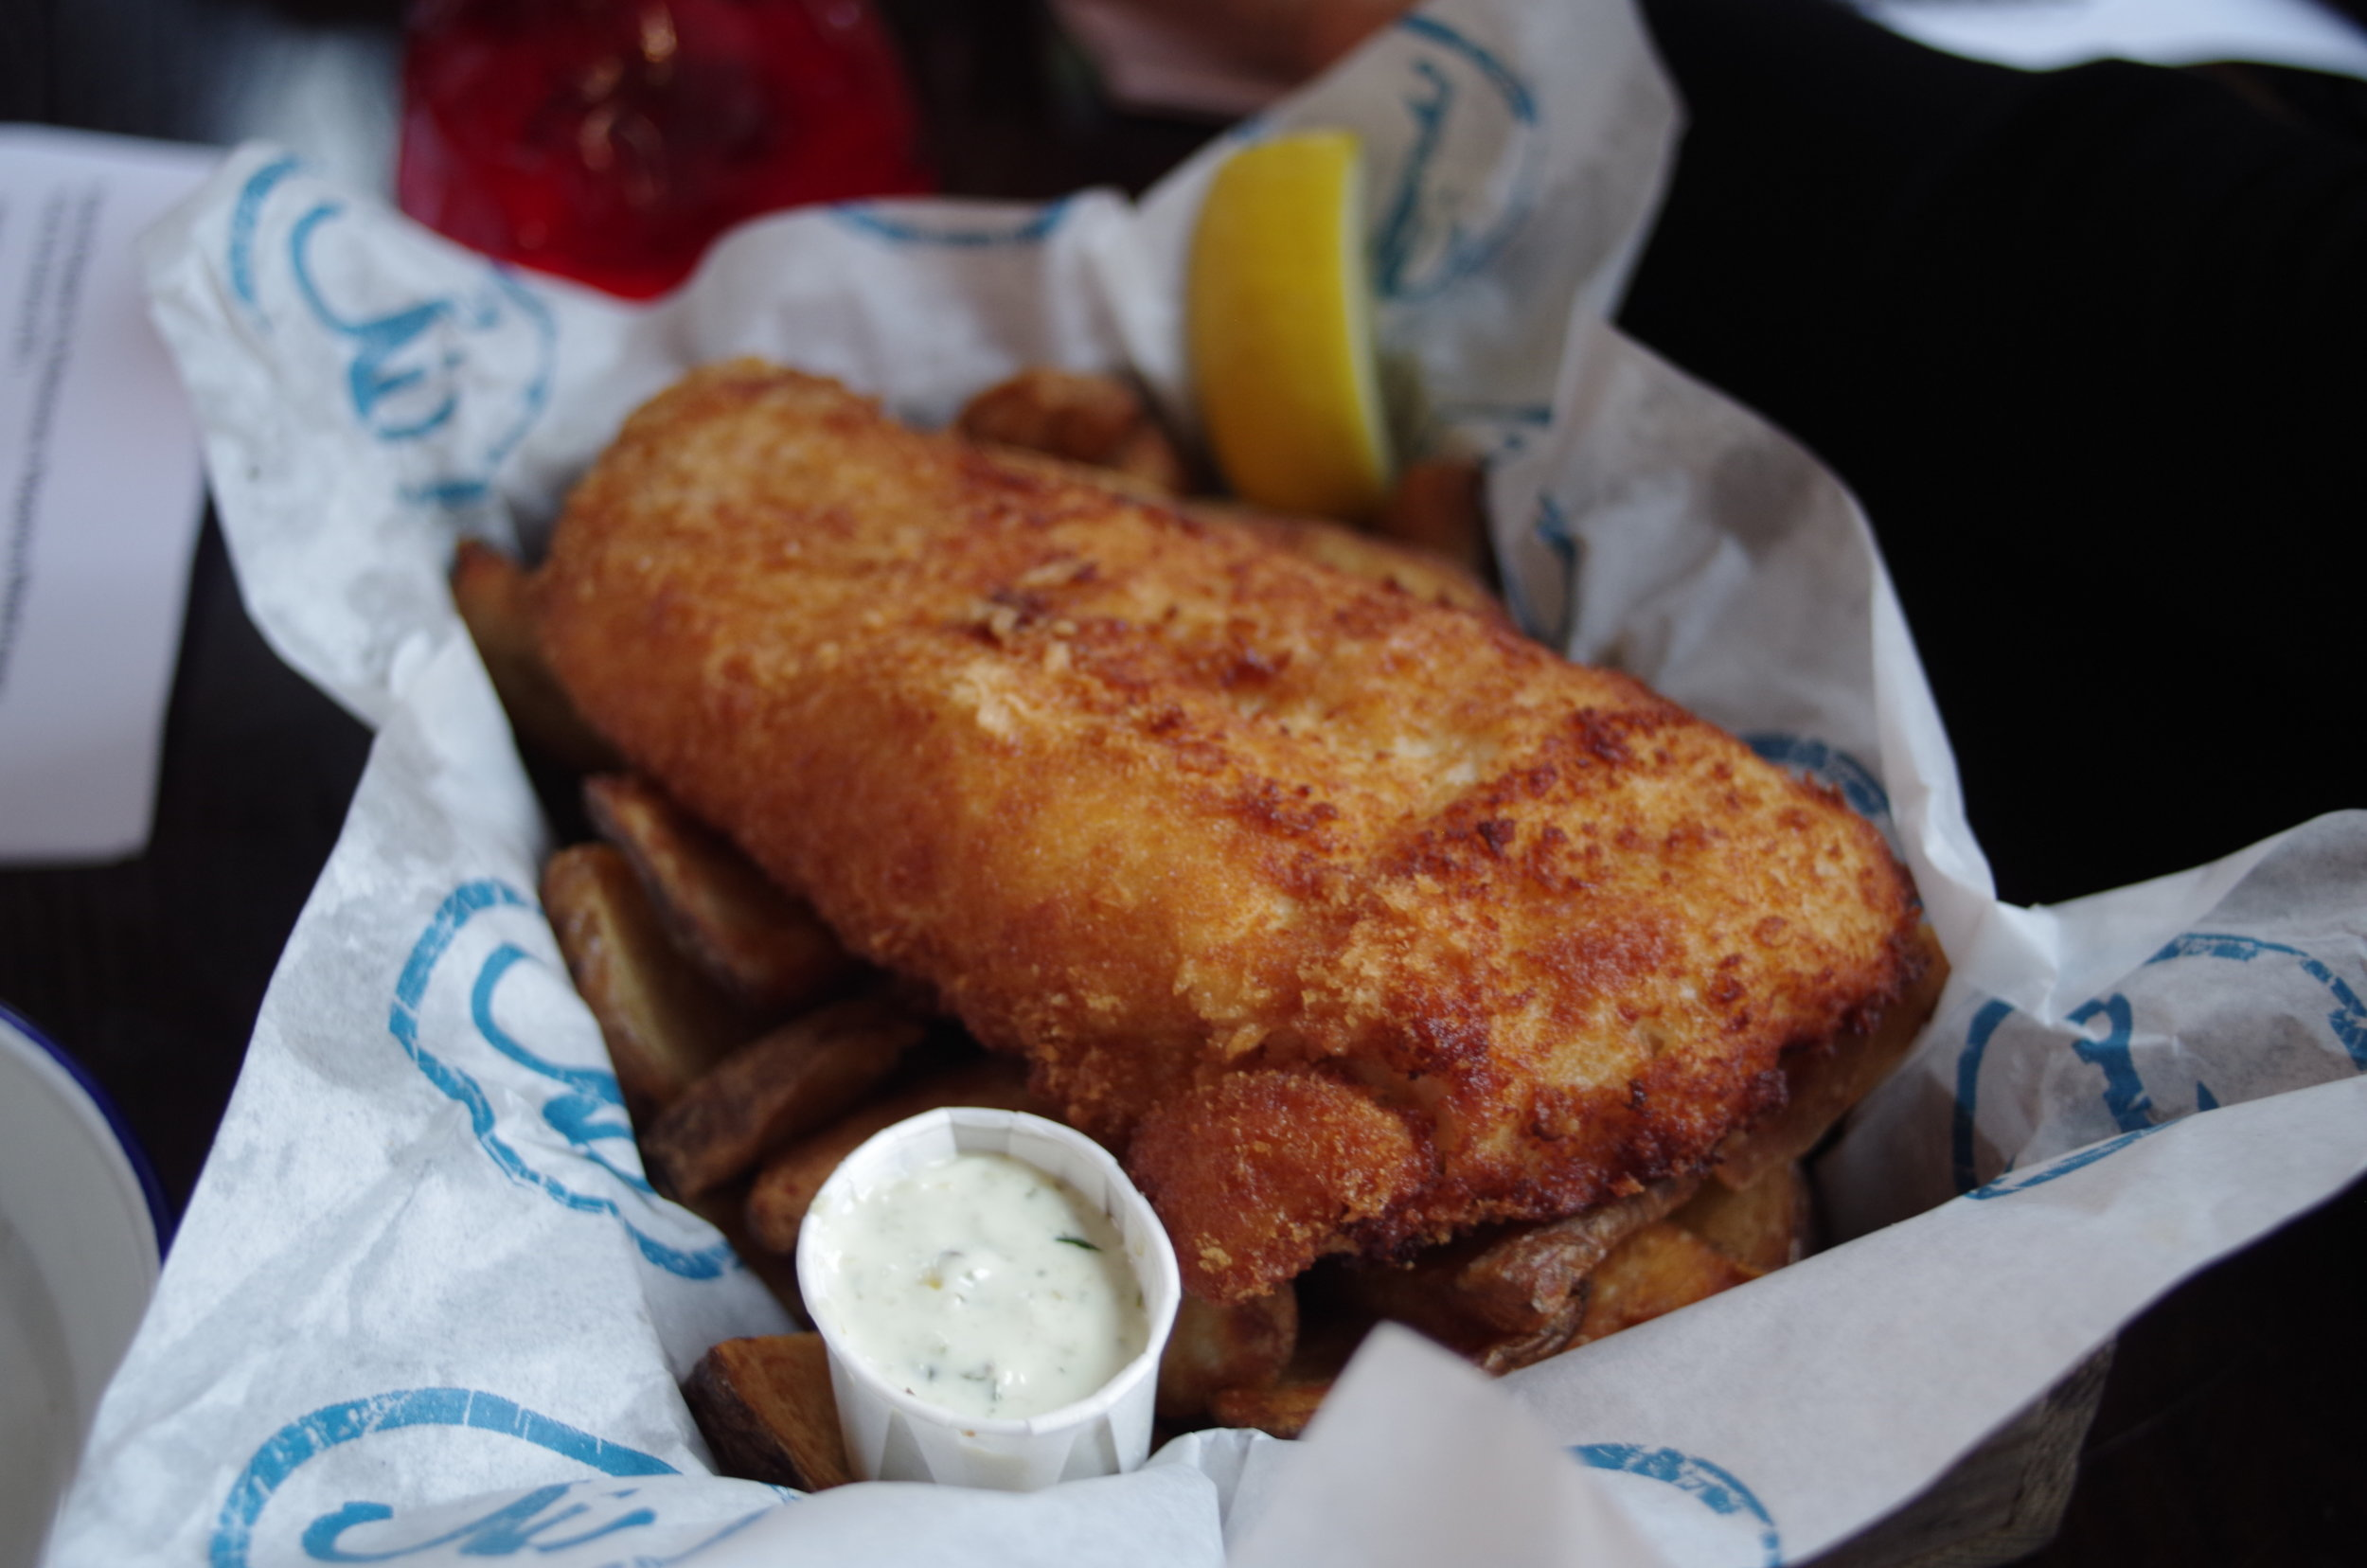 Lastly the fish from Wild Beer. Comes in a box, just for the halibut.